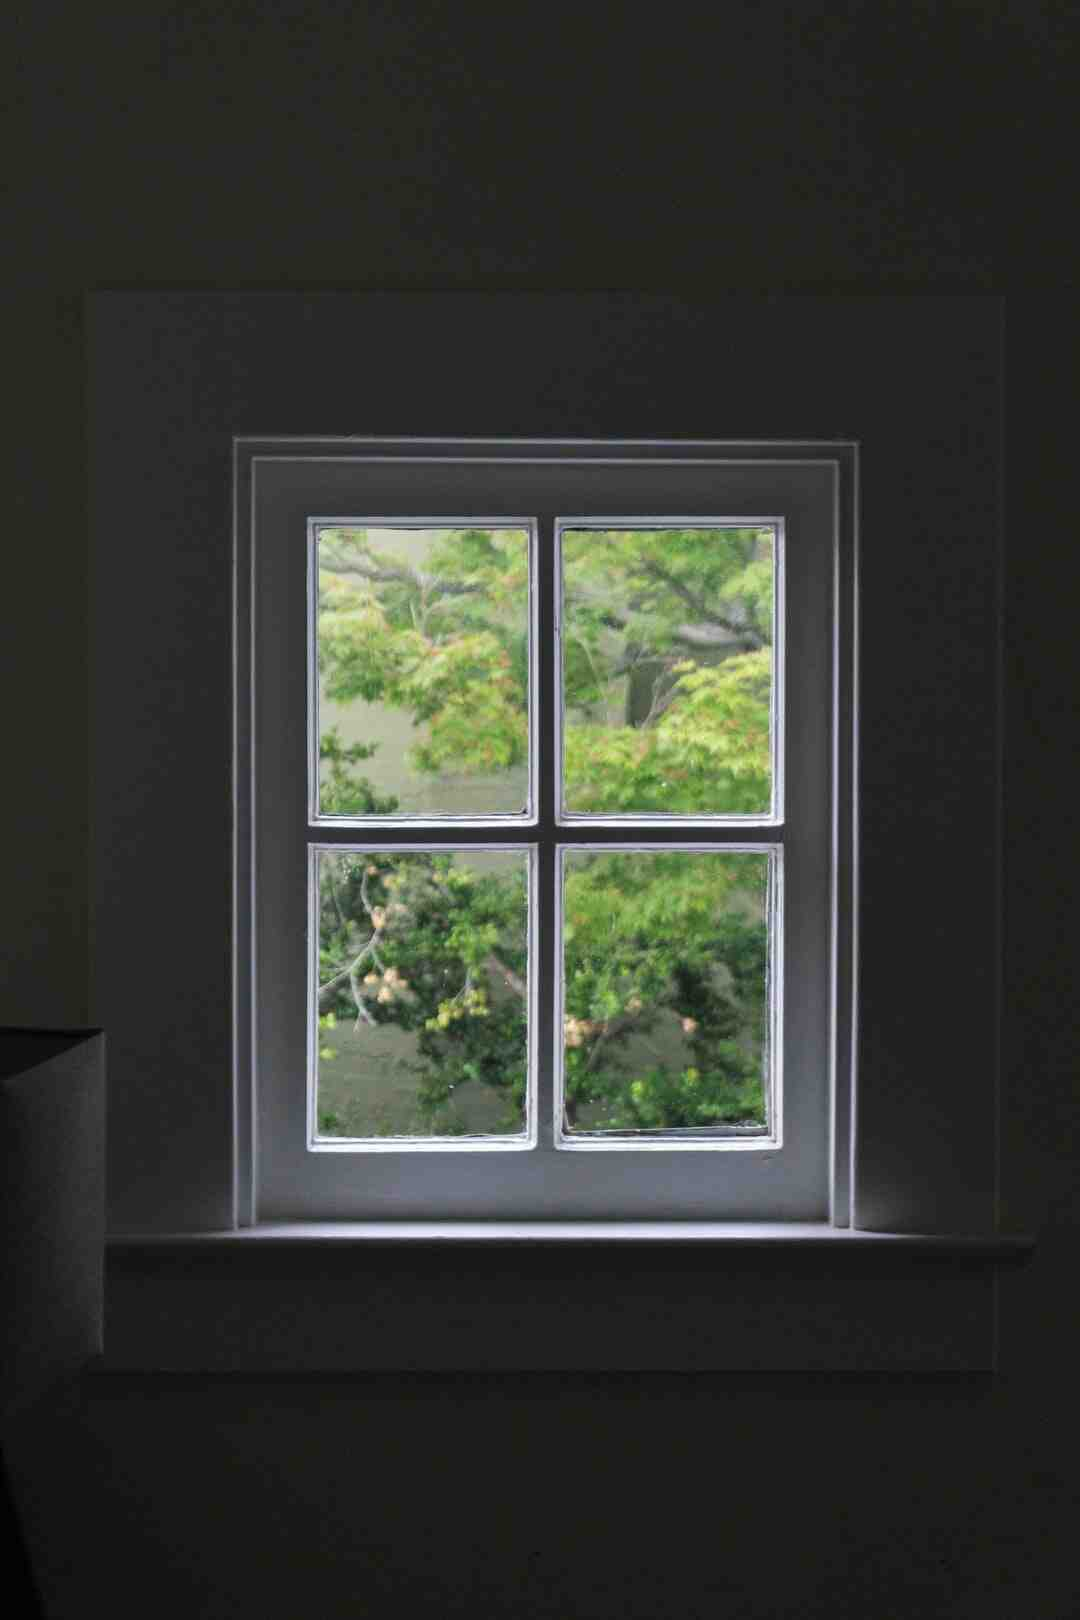 How do you measure a window for replacement?